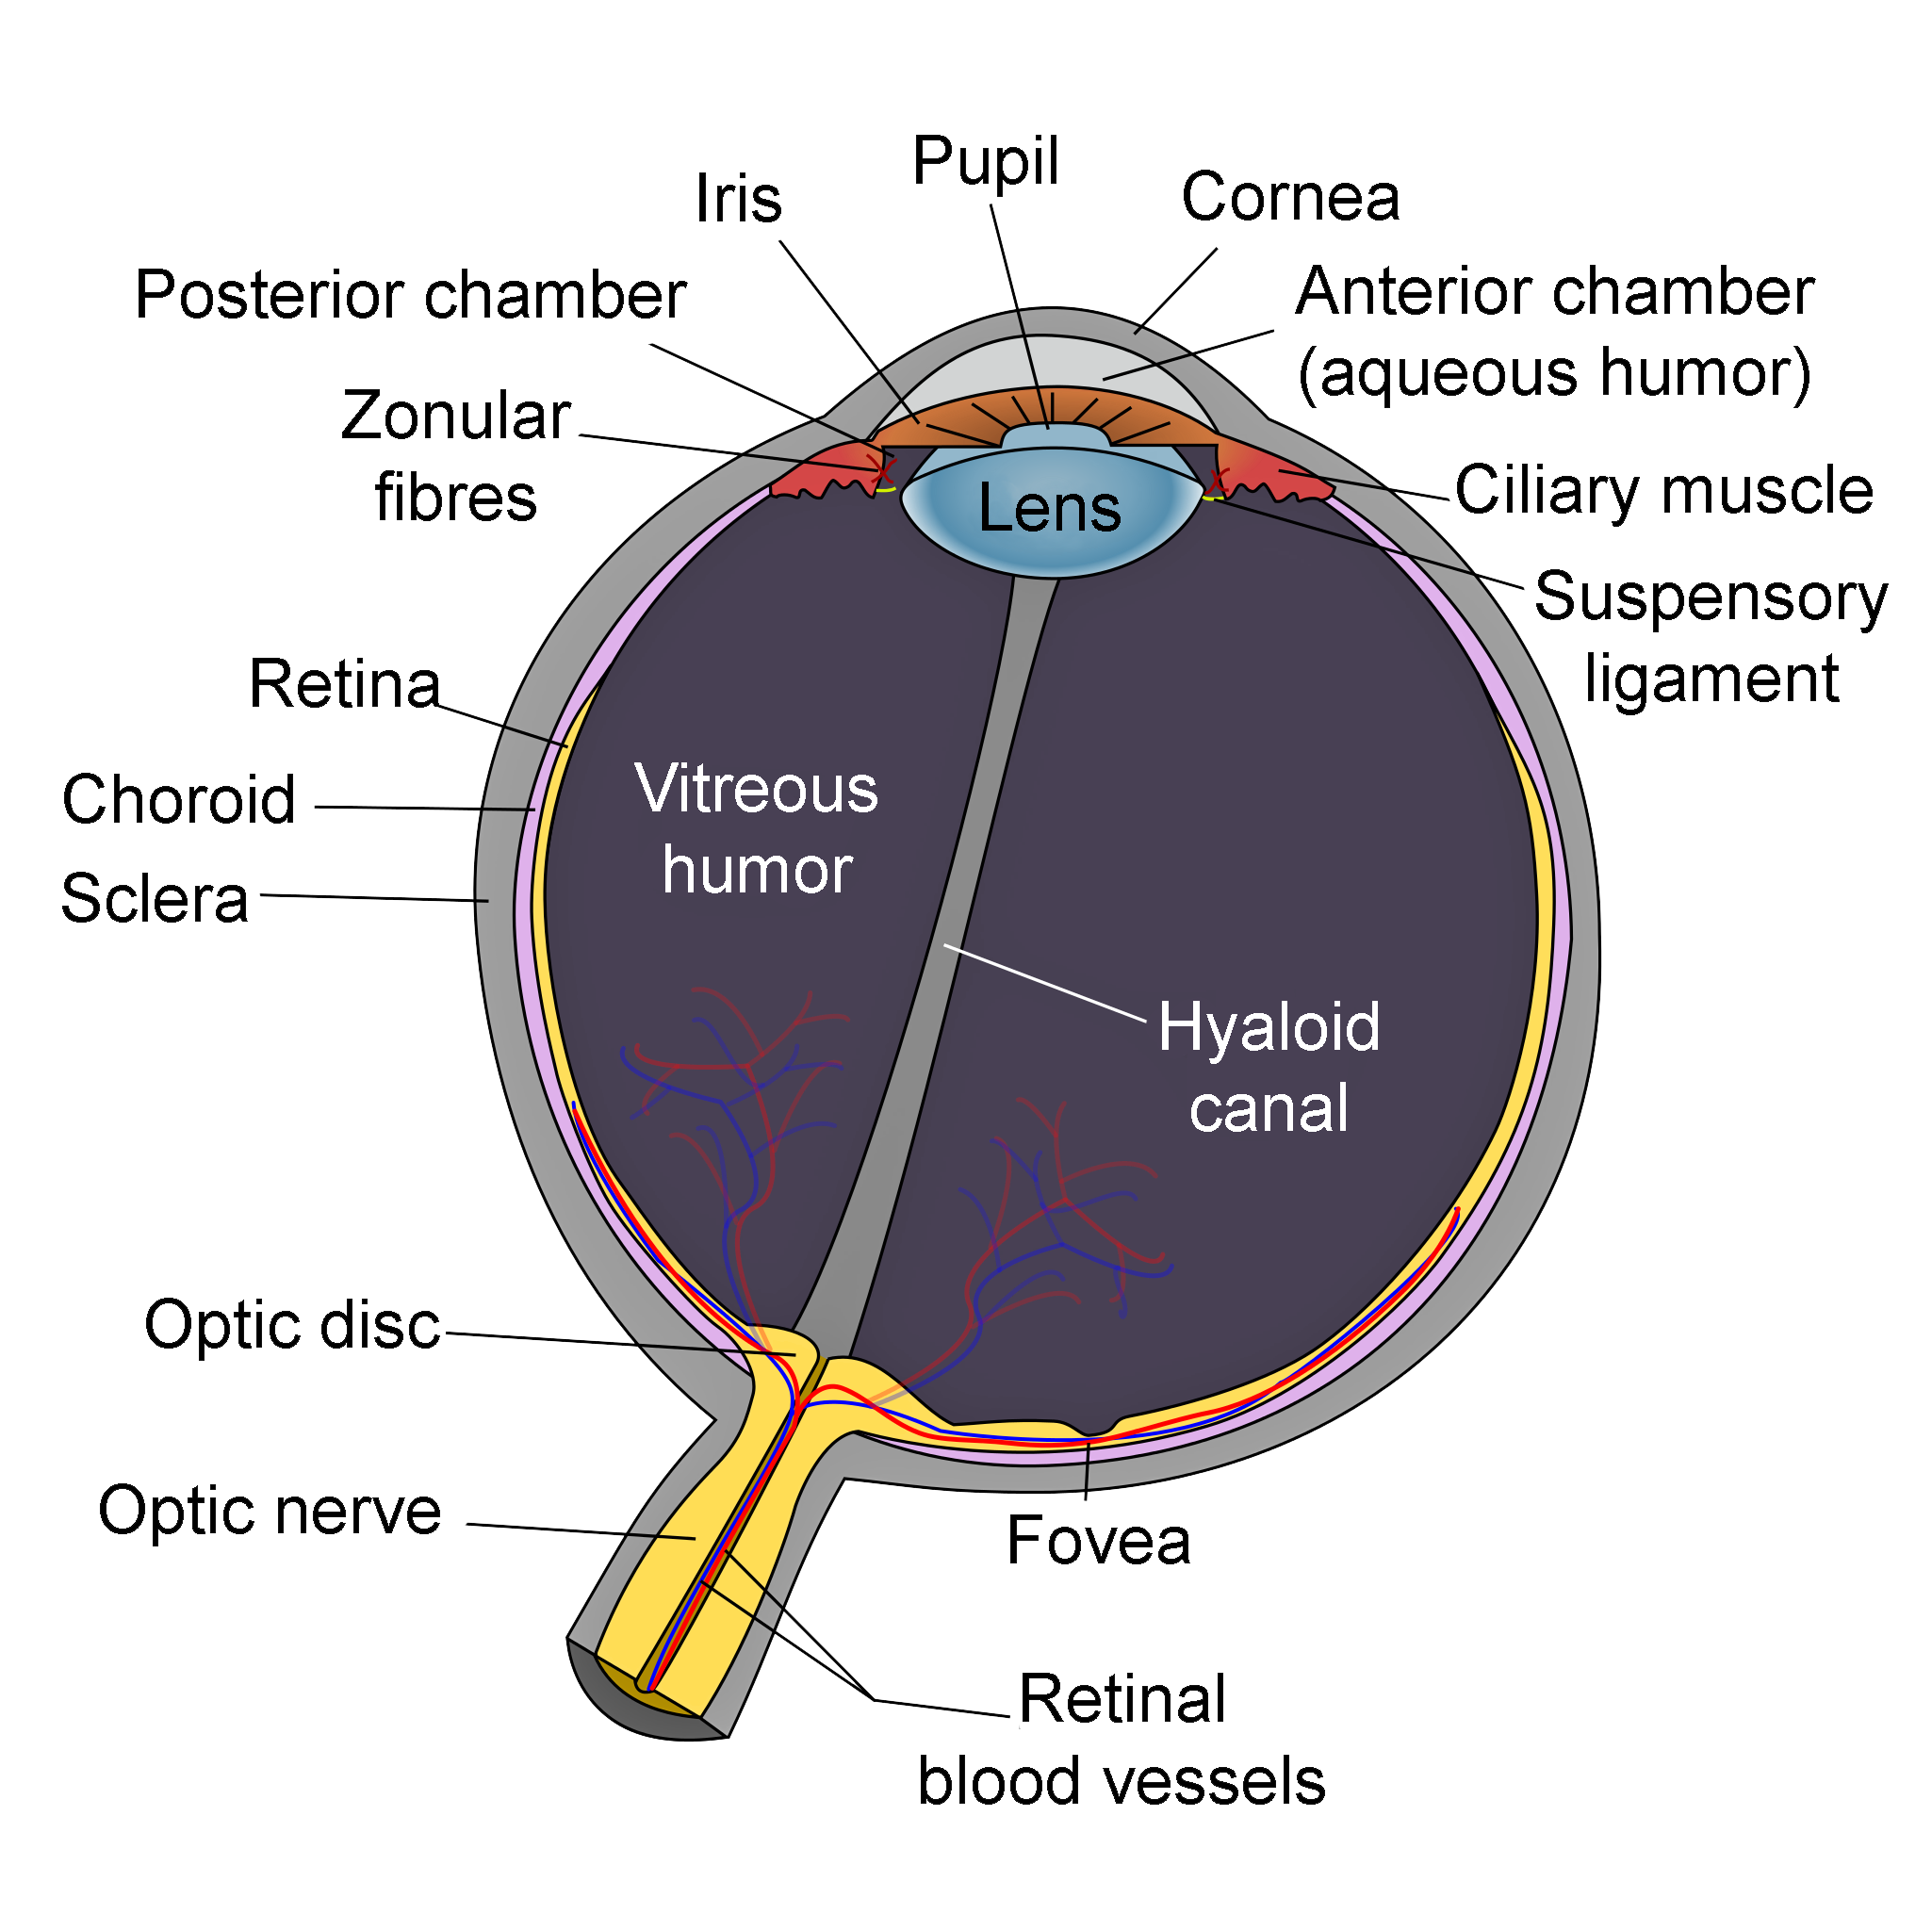 Fileschematic diagram of the human eye en editg wikimedia commons fileschematic diagram of the human eye en editg ccuart Image collections